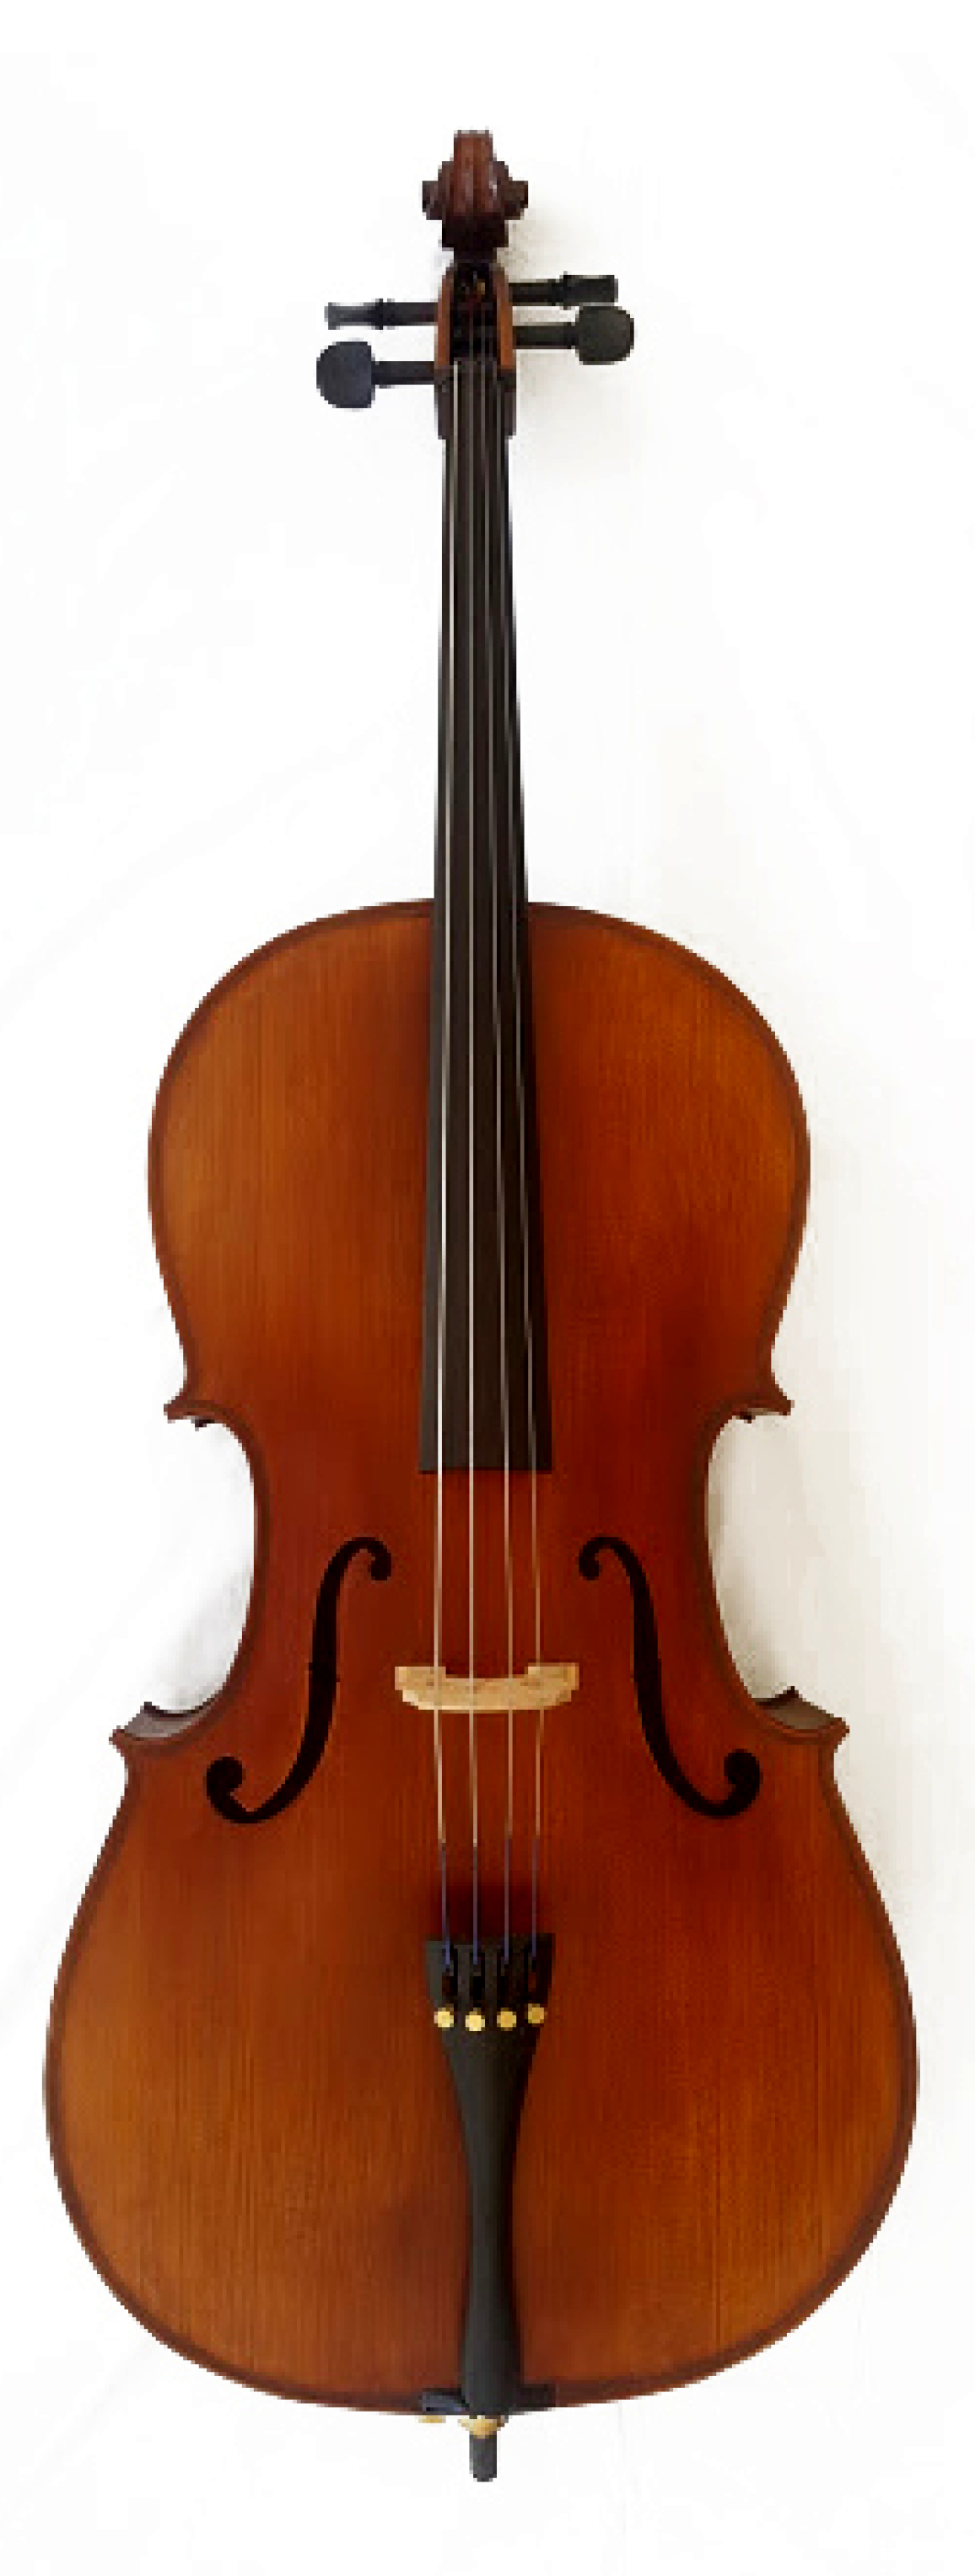 ENDEAVOUR 'Artisan' Cello